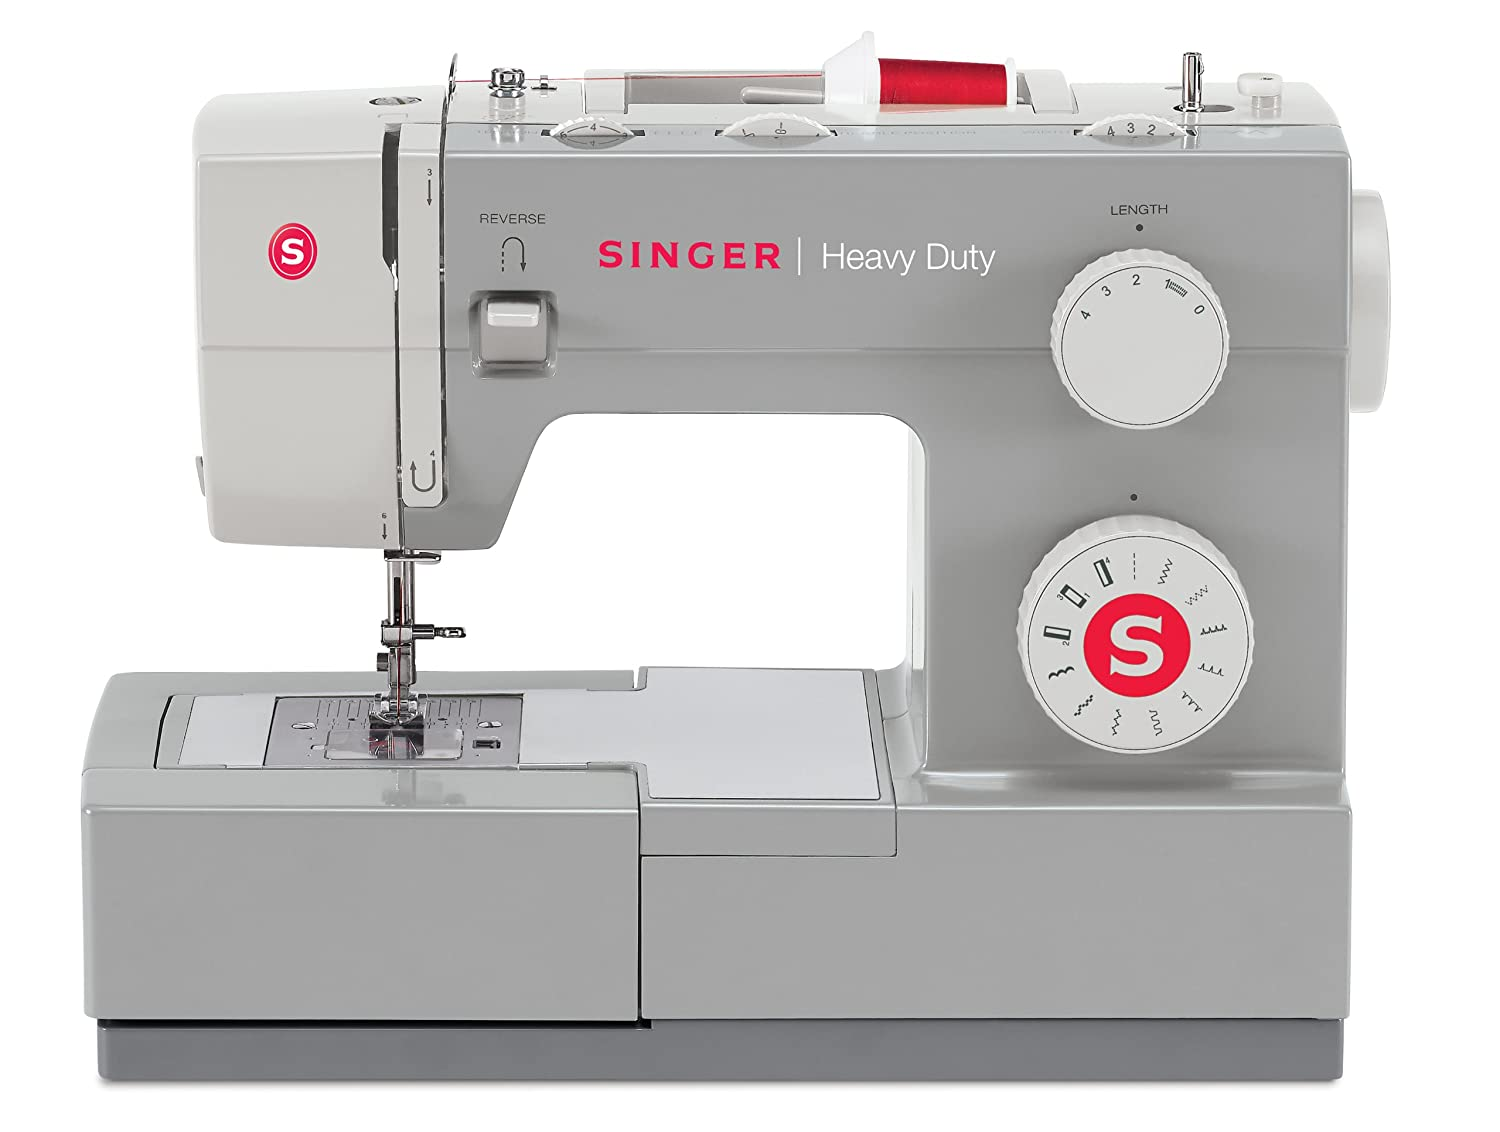 Top 5 Types of Embroidery Machines in the Market for Beginners in 2015